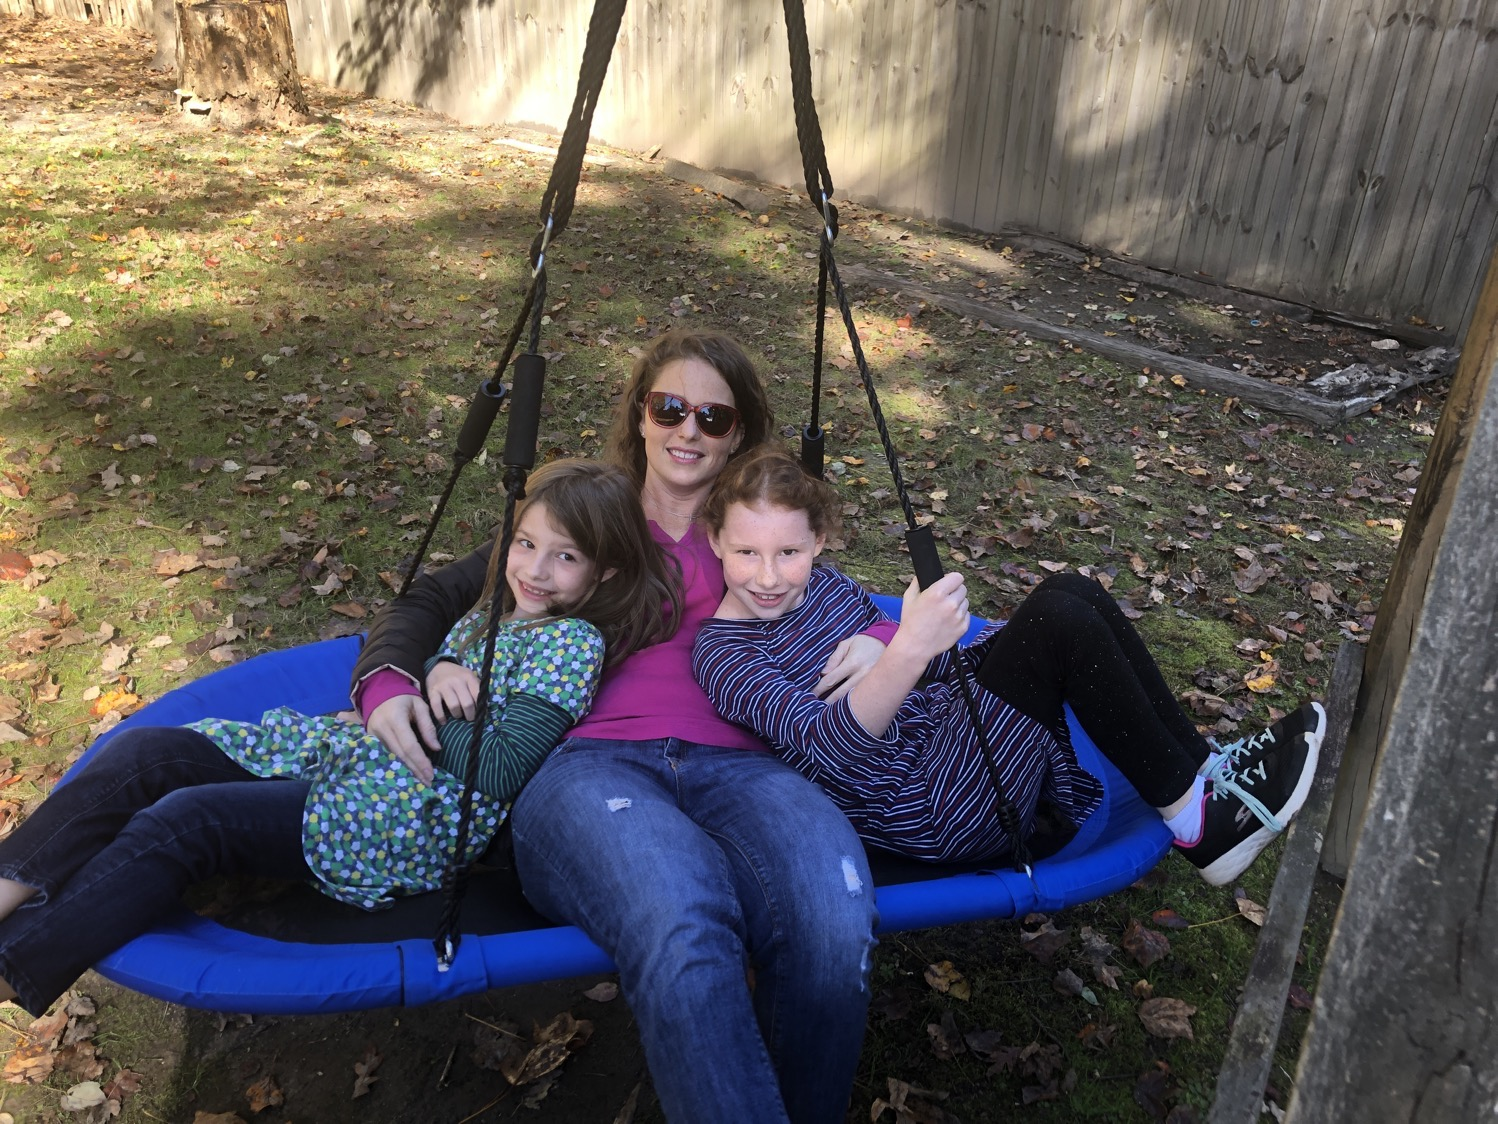 mommy and me swinging together